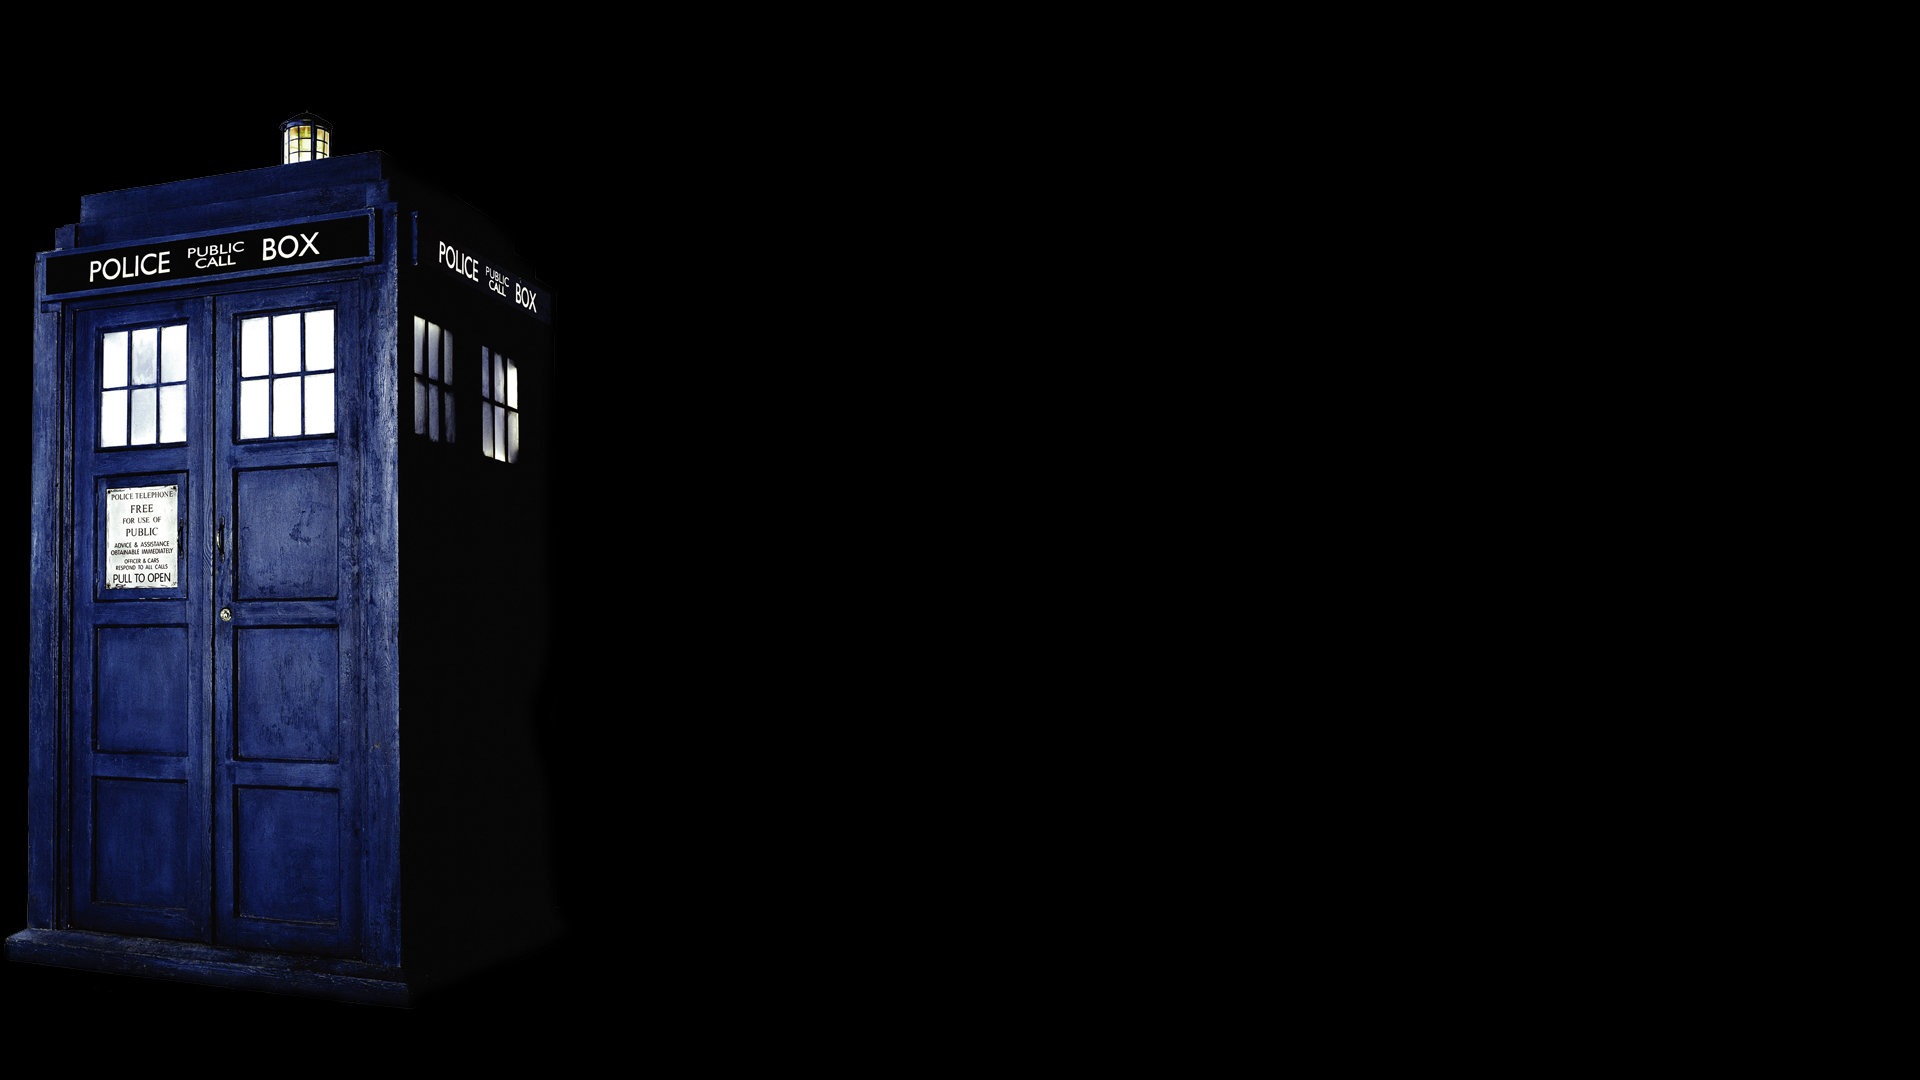 Doctor Who Wallpapers 1920x1080 Full Hd 1080p Desktop Backgrounds